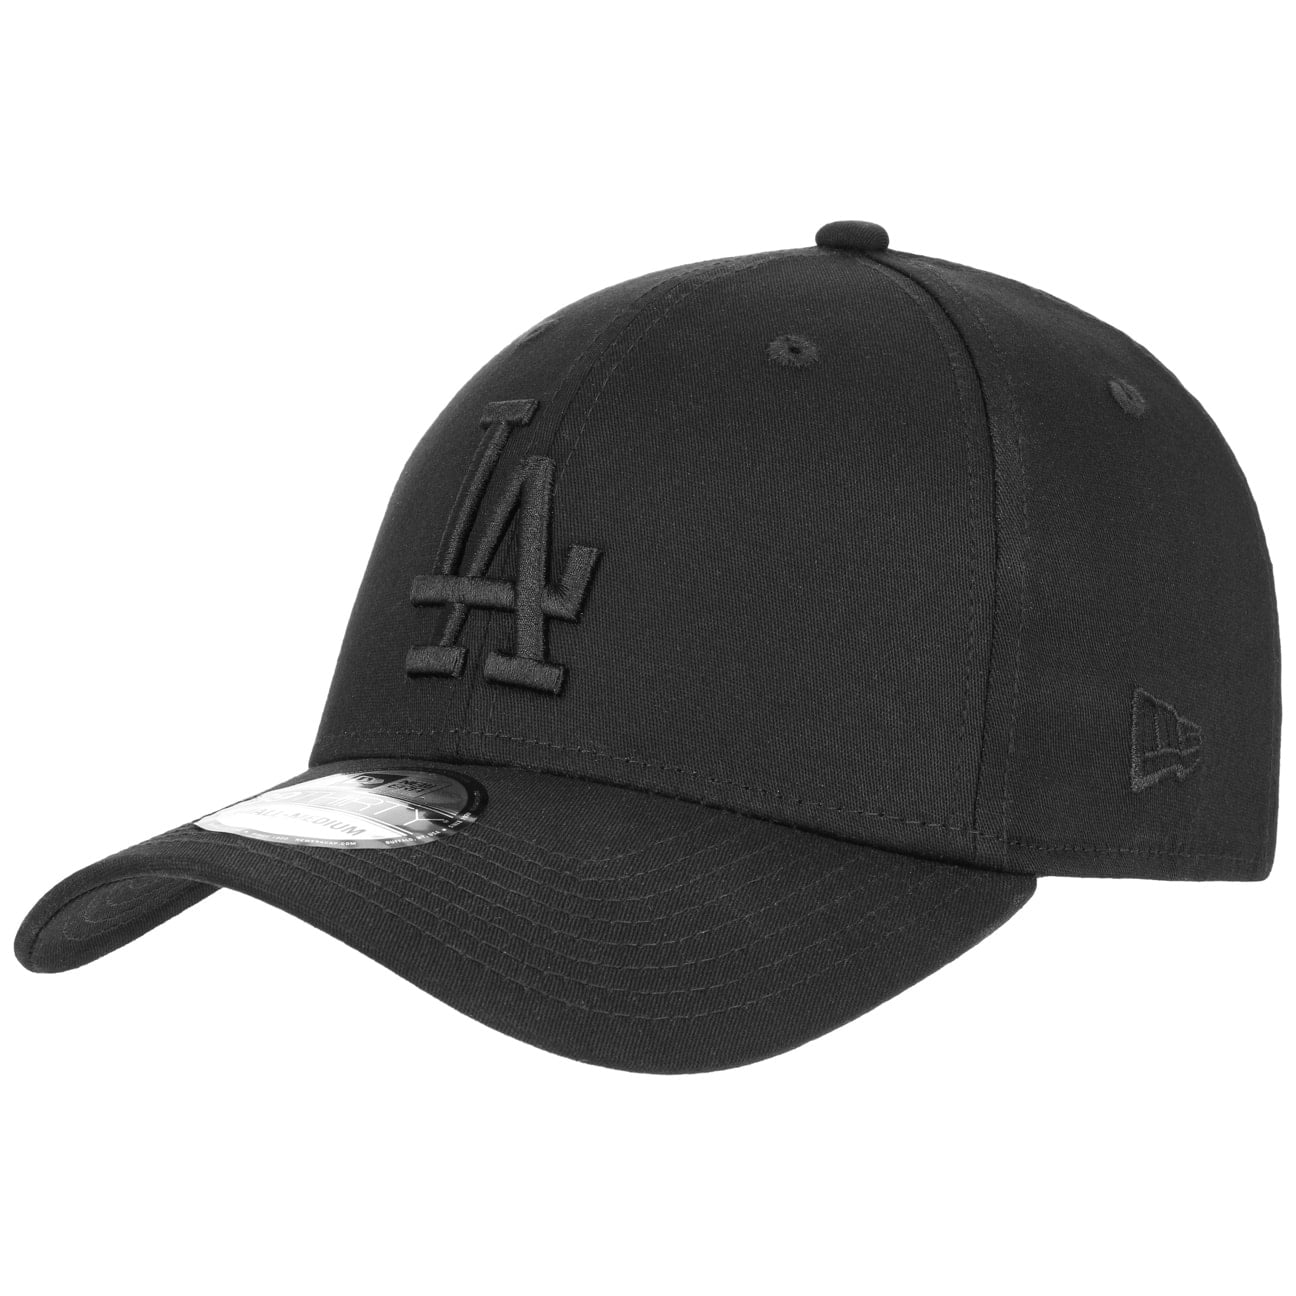 Gorra 39Thirty BOB Dodgers by New Era